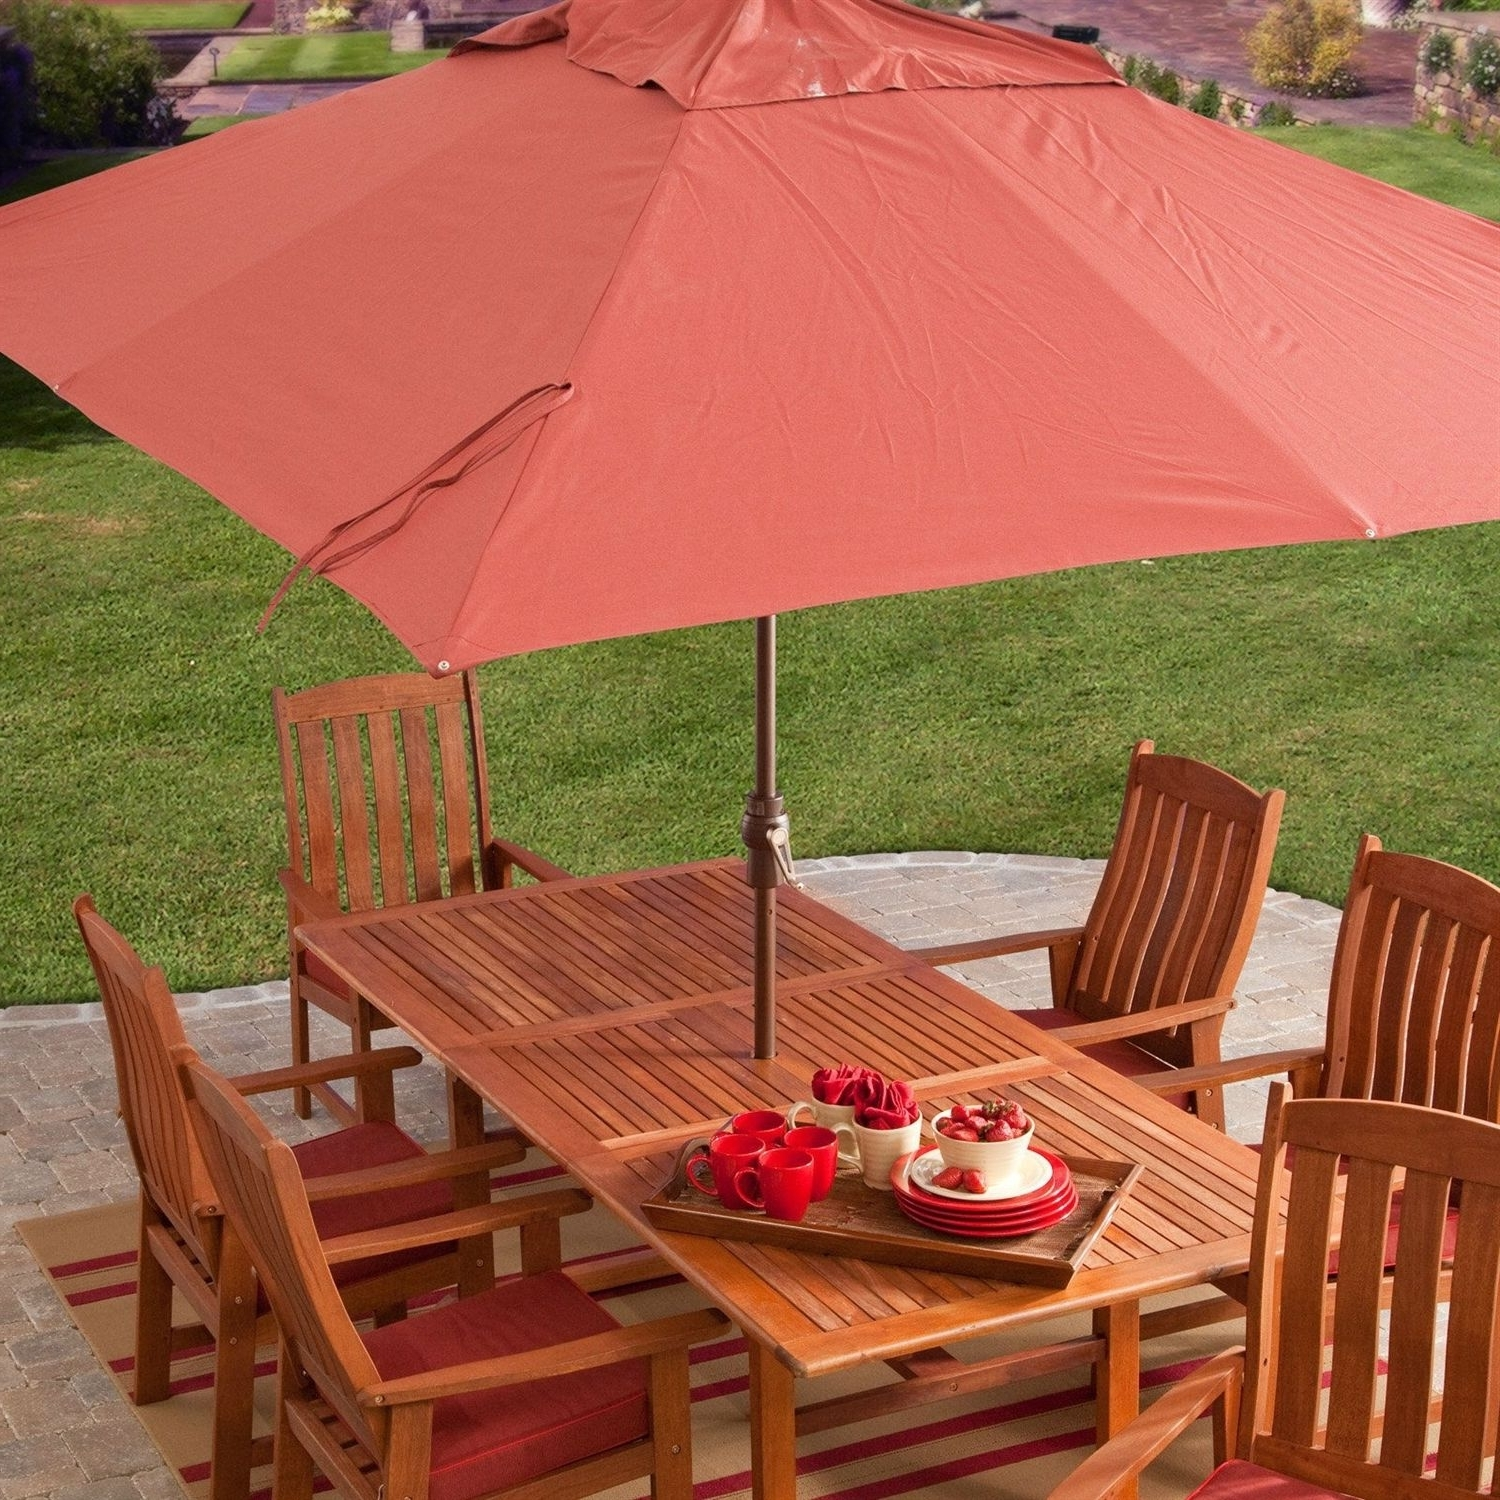 Most Recently Released 8 X 11 Ft Rectangle Patio Umbrella With Red Orange Terracotta Canopy Pertaining To Rectangular Patio Umbrellas (View 5 of 20)